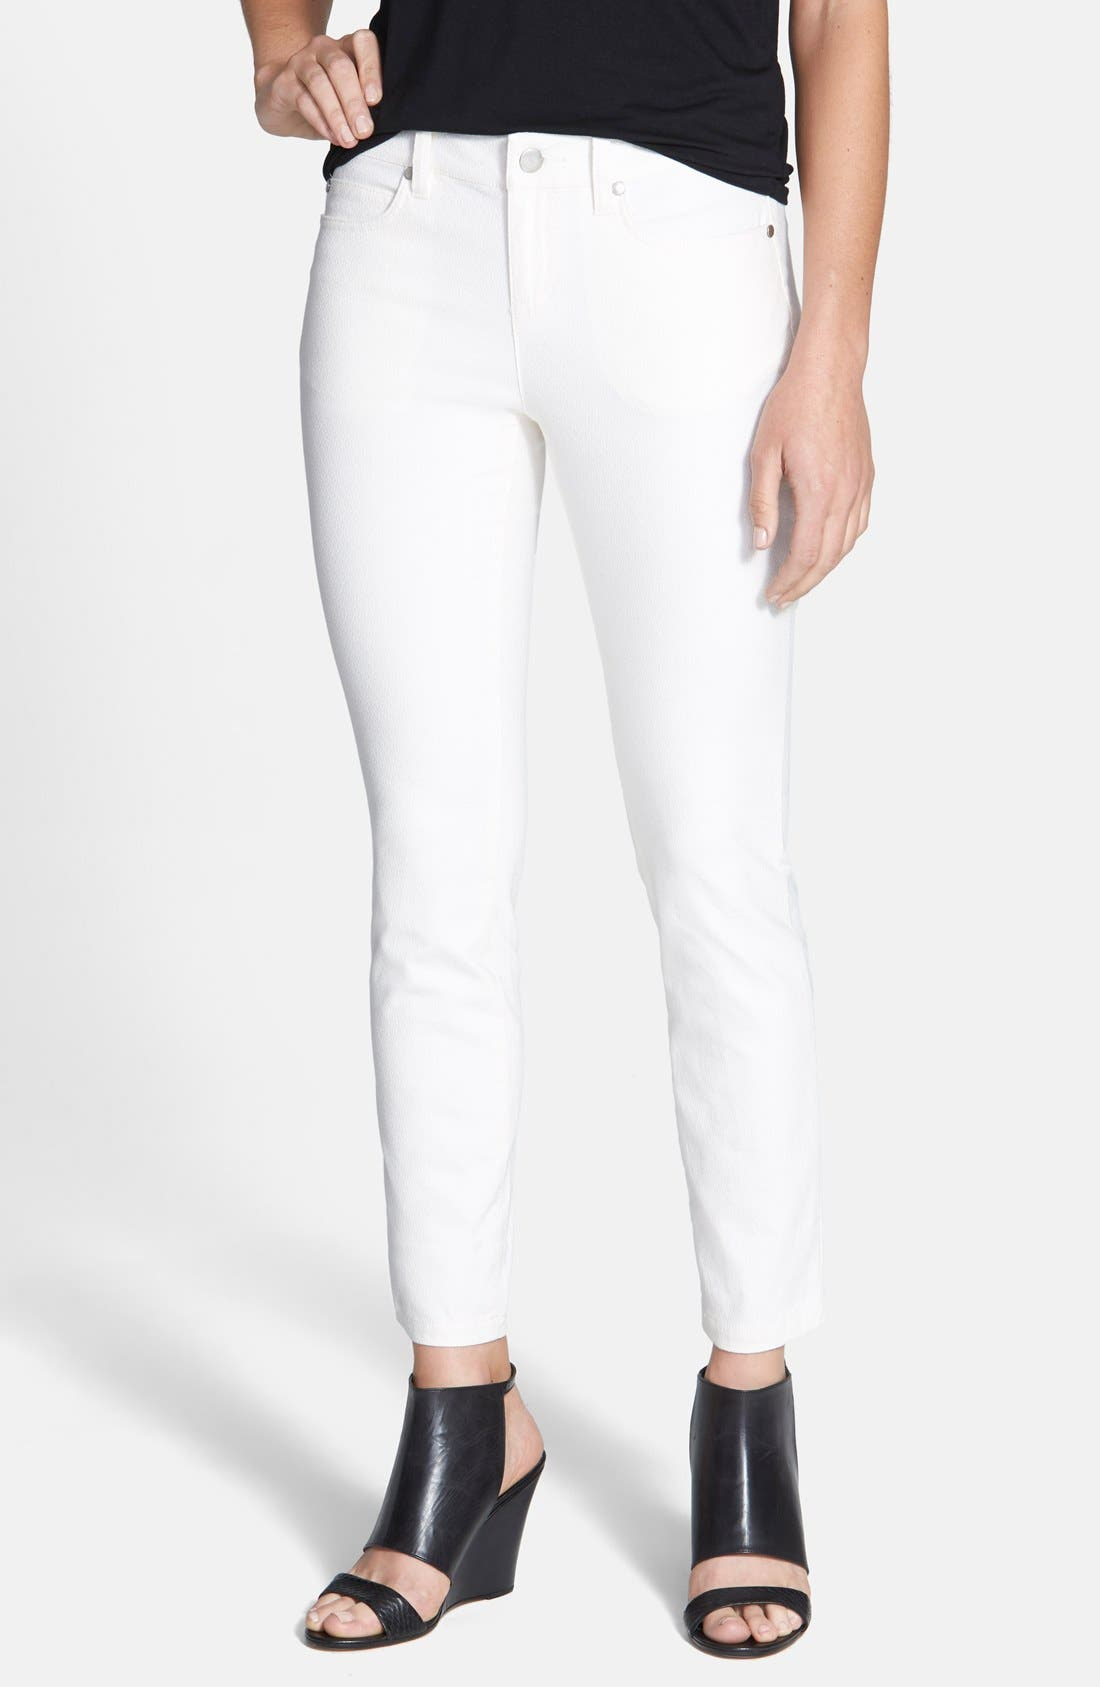 Alternate Image 1 Selected - Eileen Fisher Ankle Skinny Jeans (Soft White) (Petite)